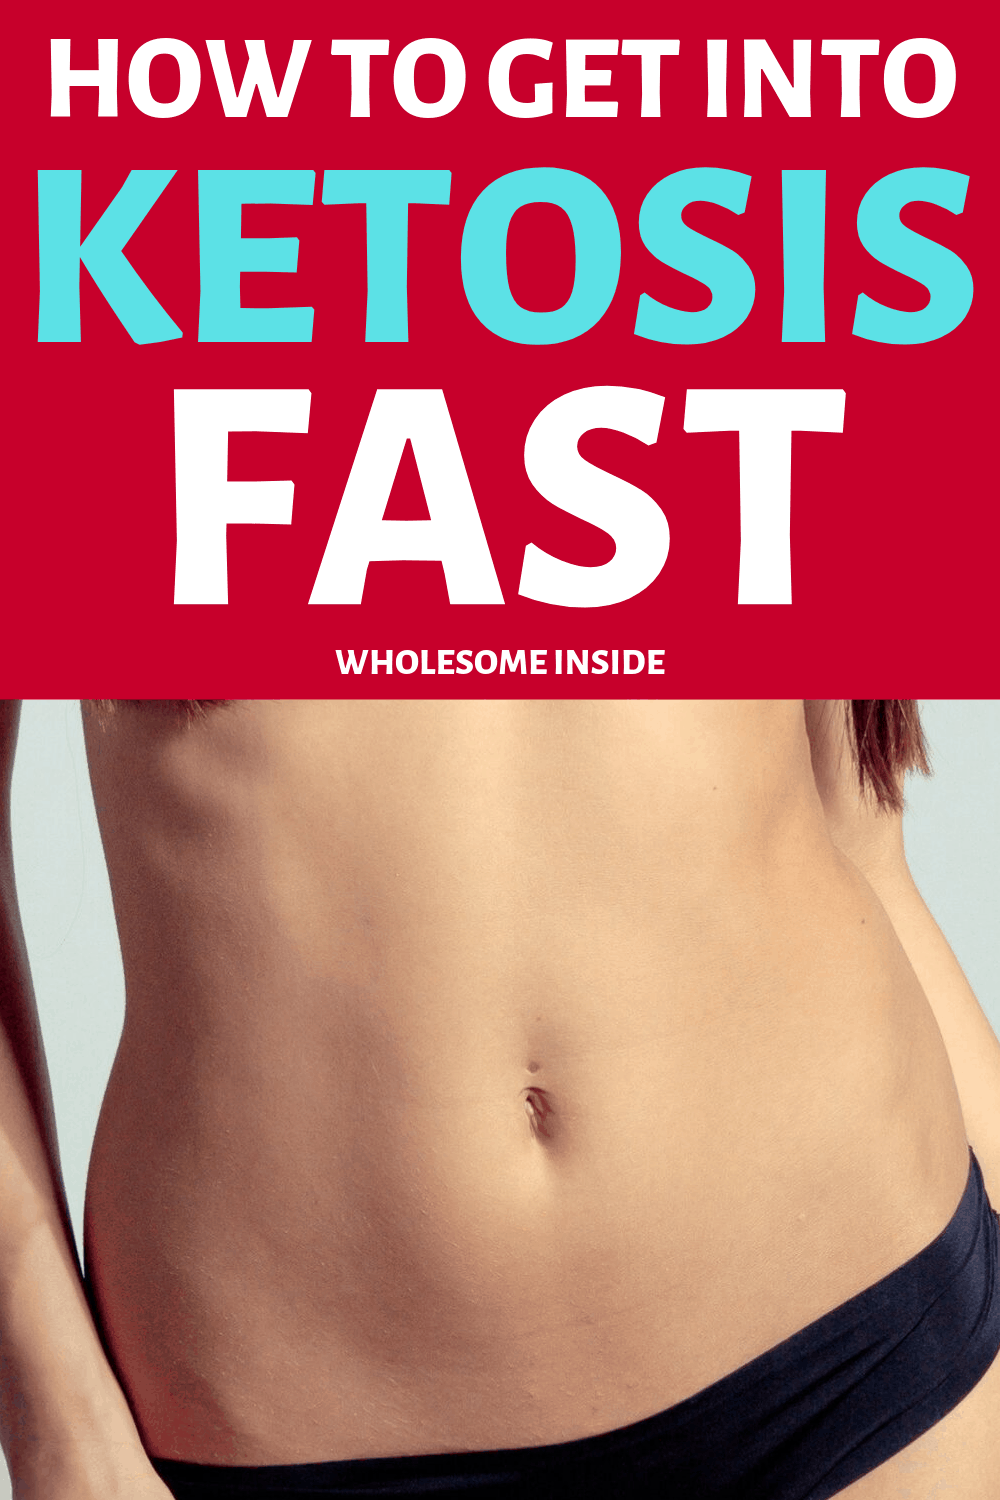 Get into ketosis fast